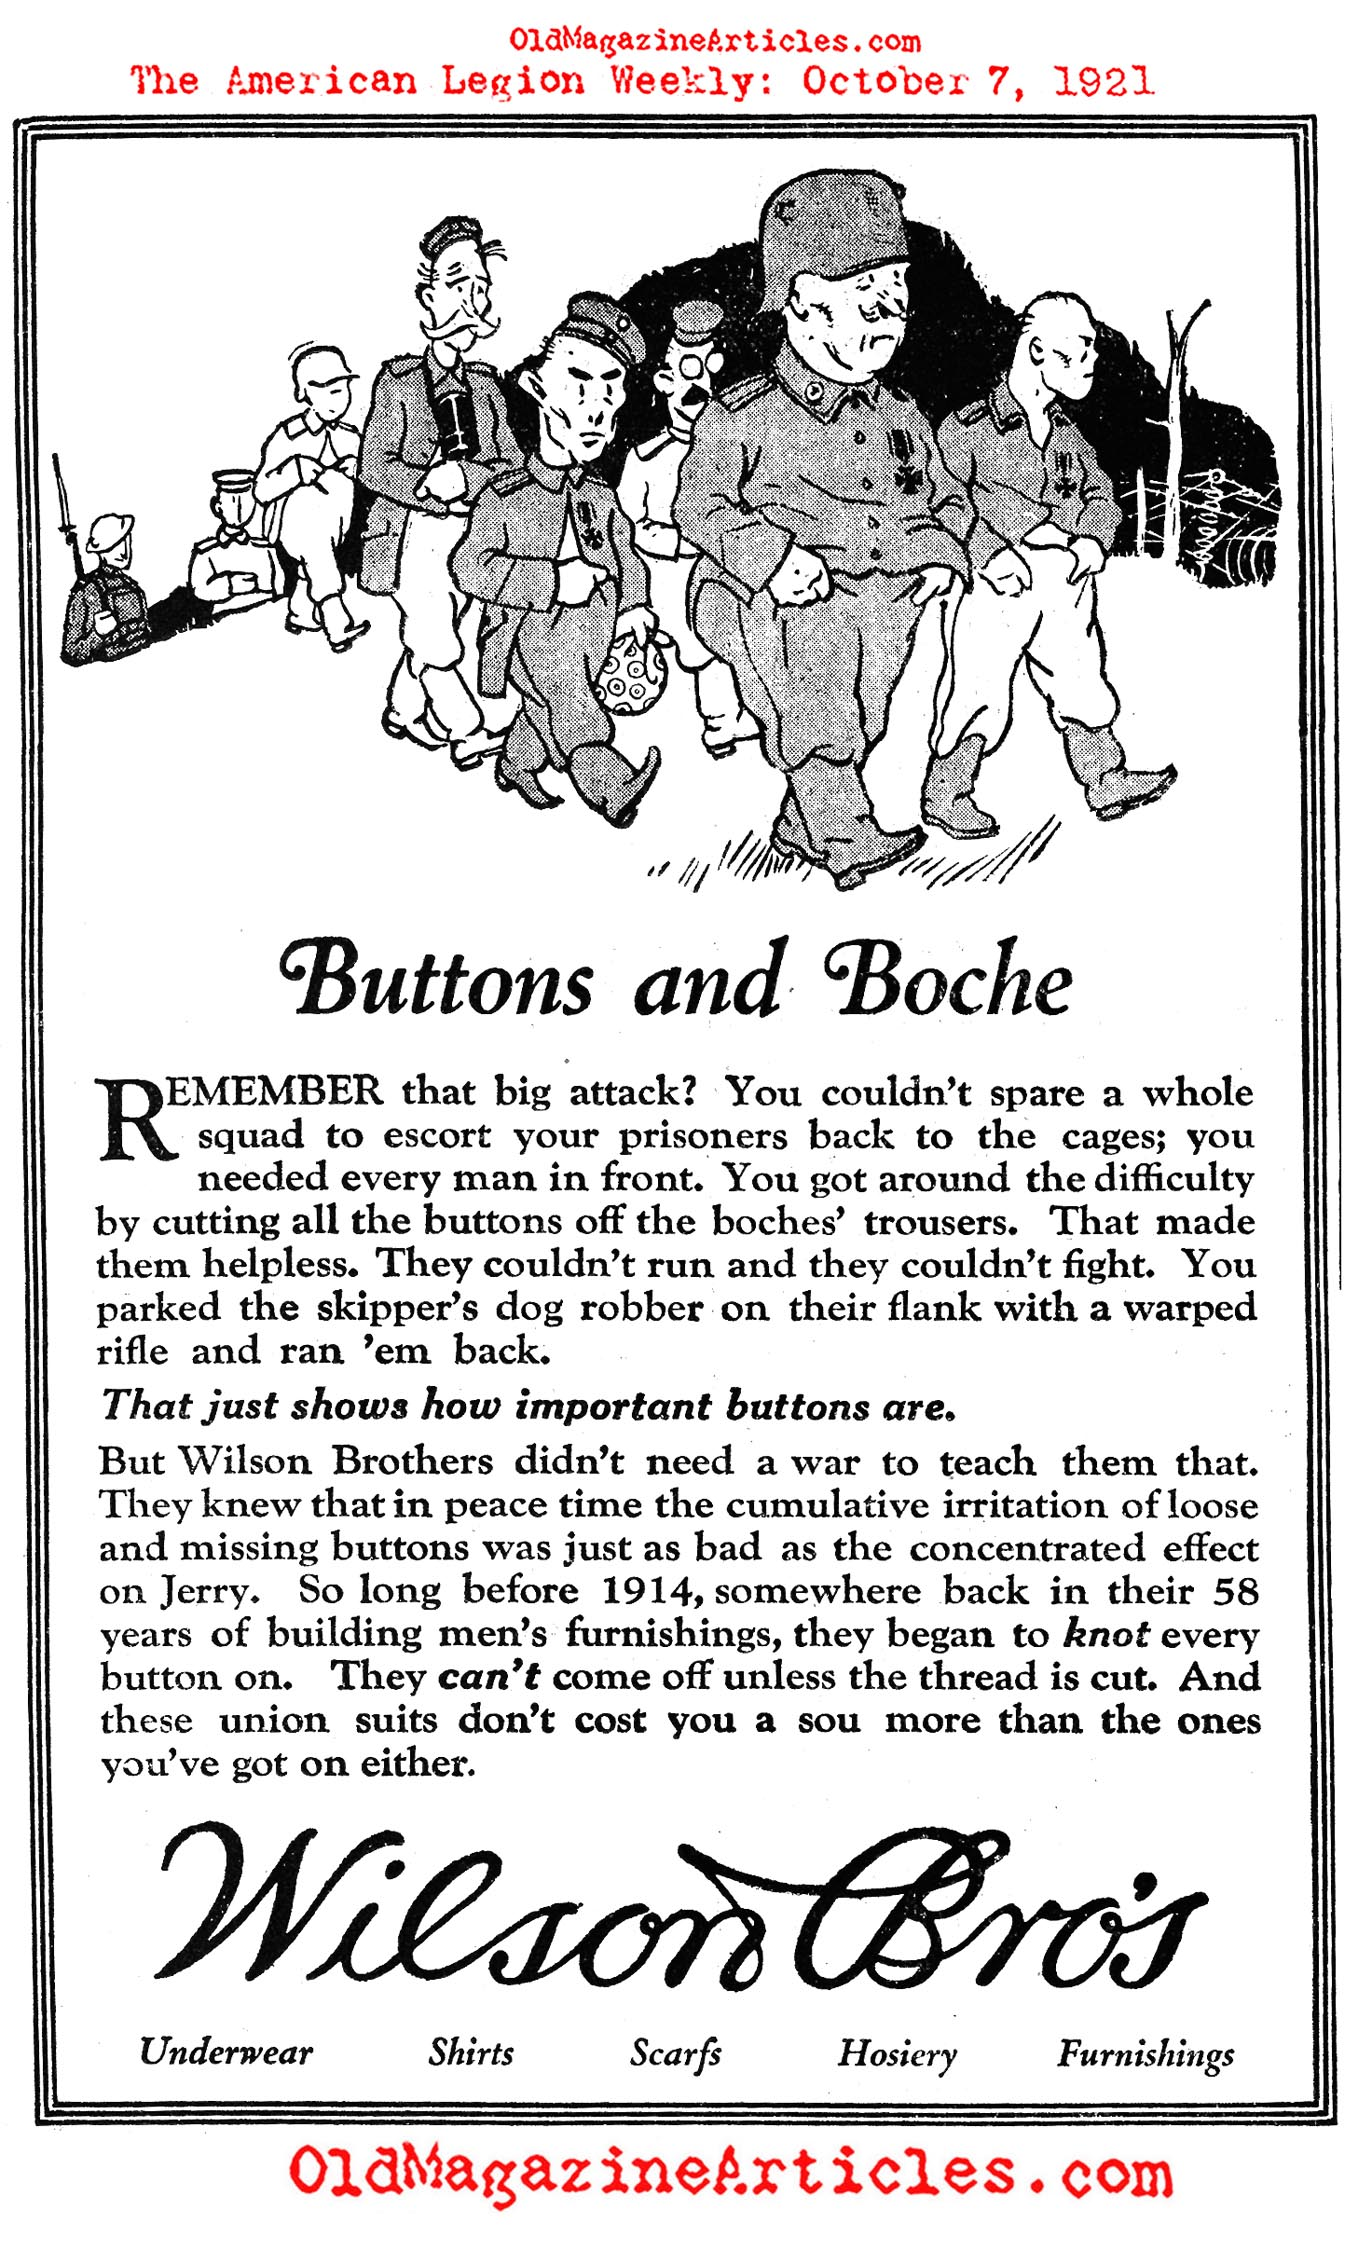 A Clever Way to Escort Prisoners... (American Legion Weekly, 1921)